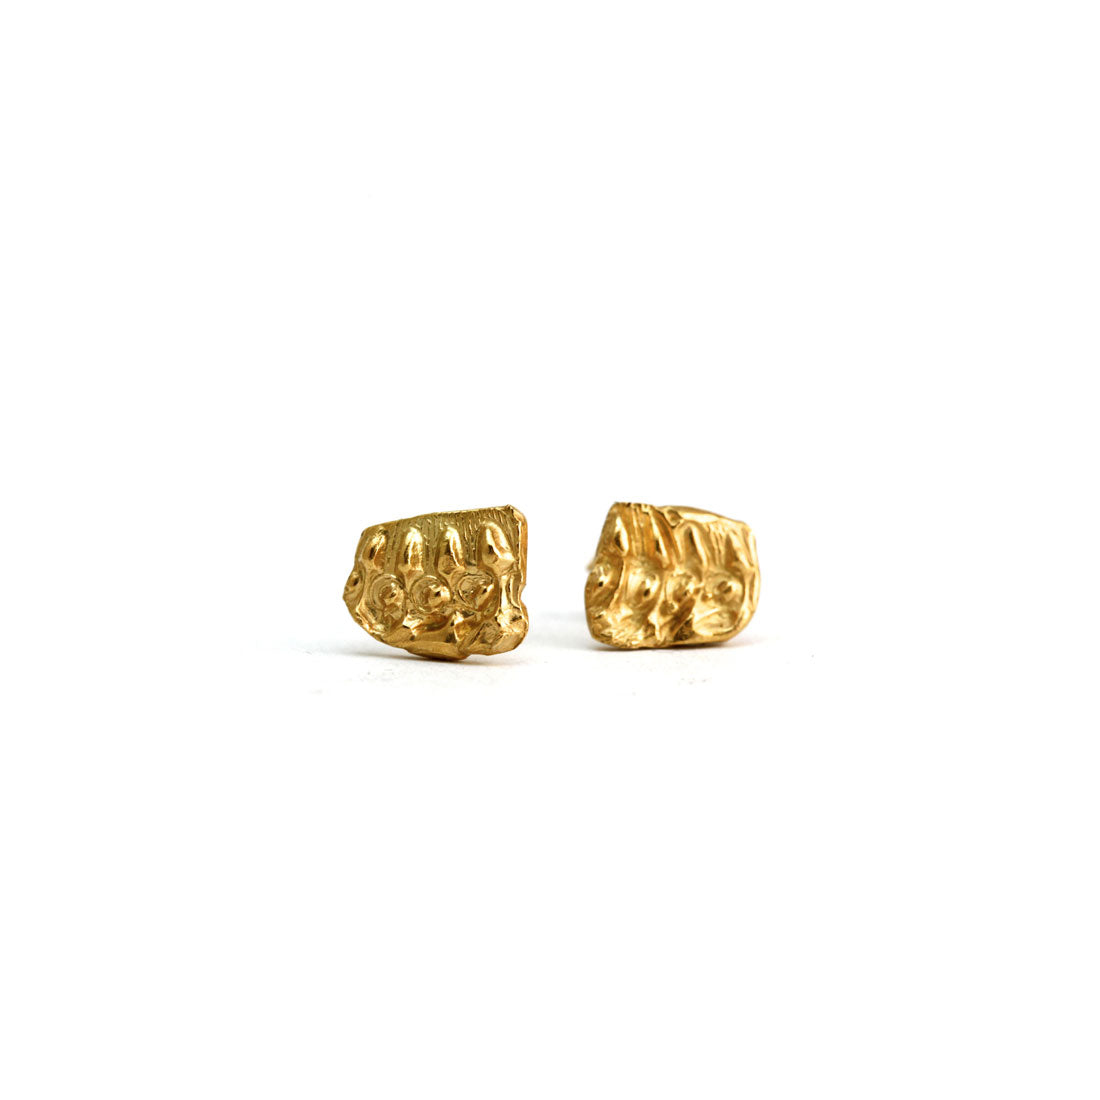 gold textured earring studs in 18ct gold plate, custom handmade bespoke jewellery.